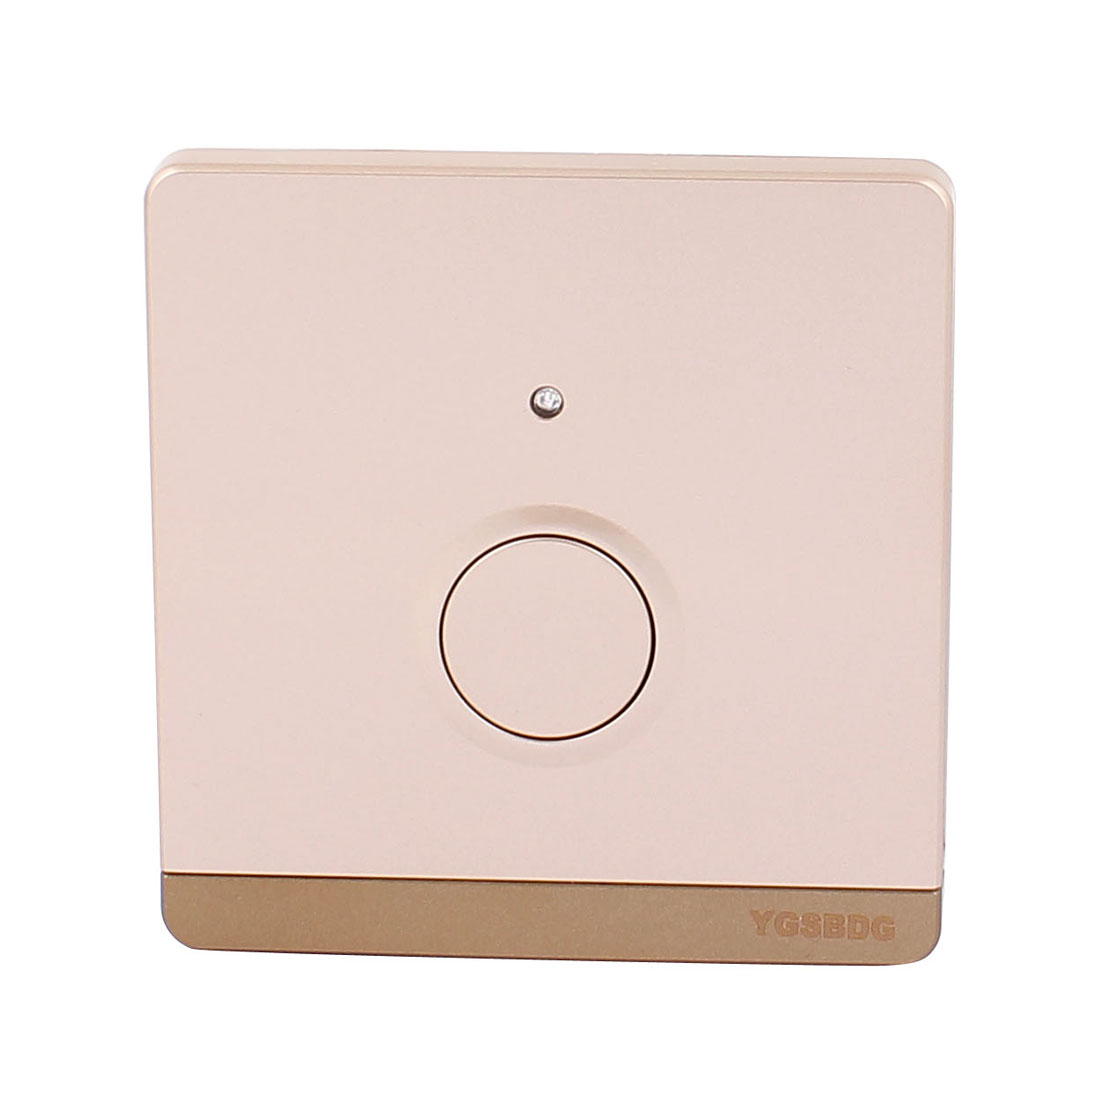 AC 220V 50/60Hz 86 Type Noctilucent Indicator Lamp Touch Control Delay Wall Switch Champagne Gold